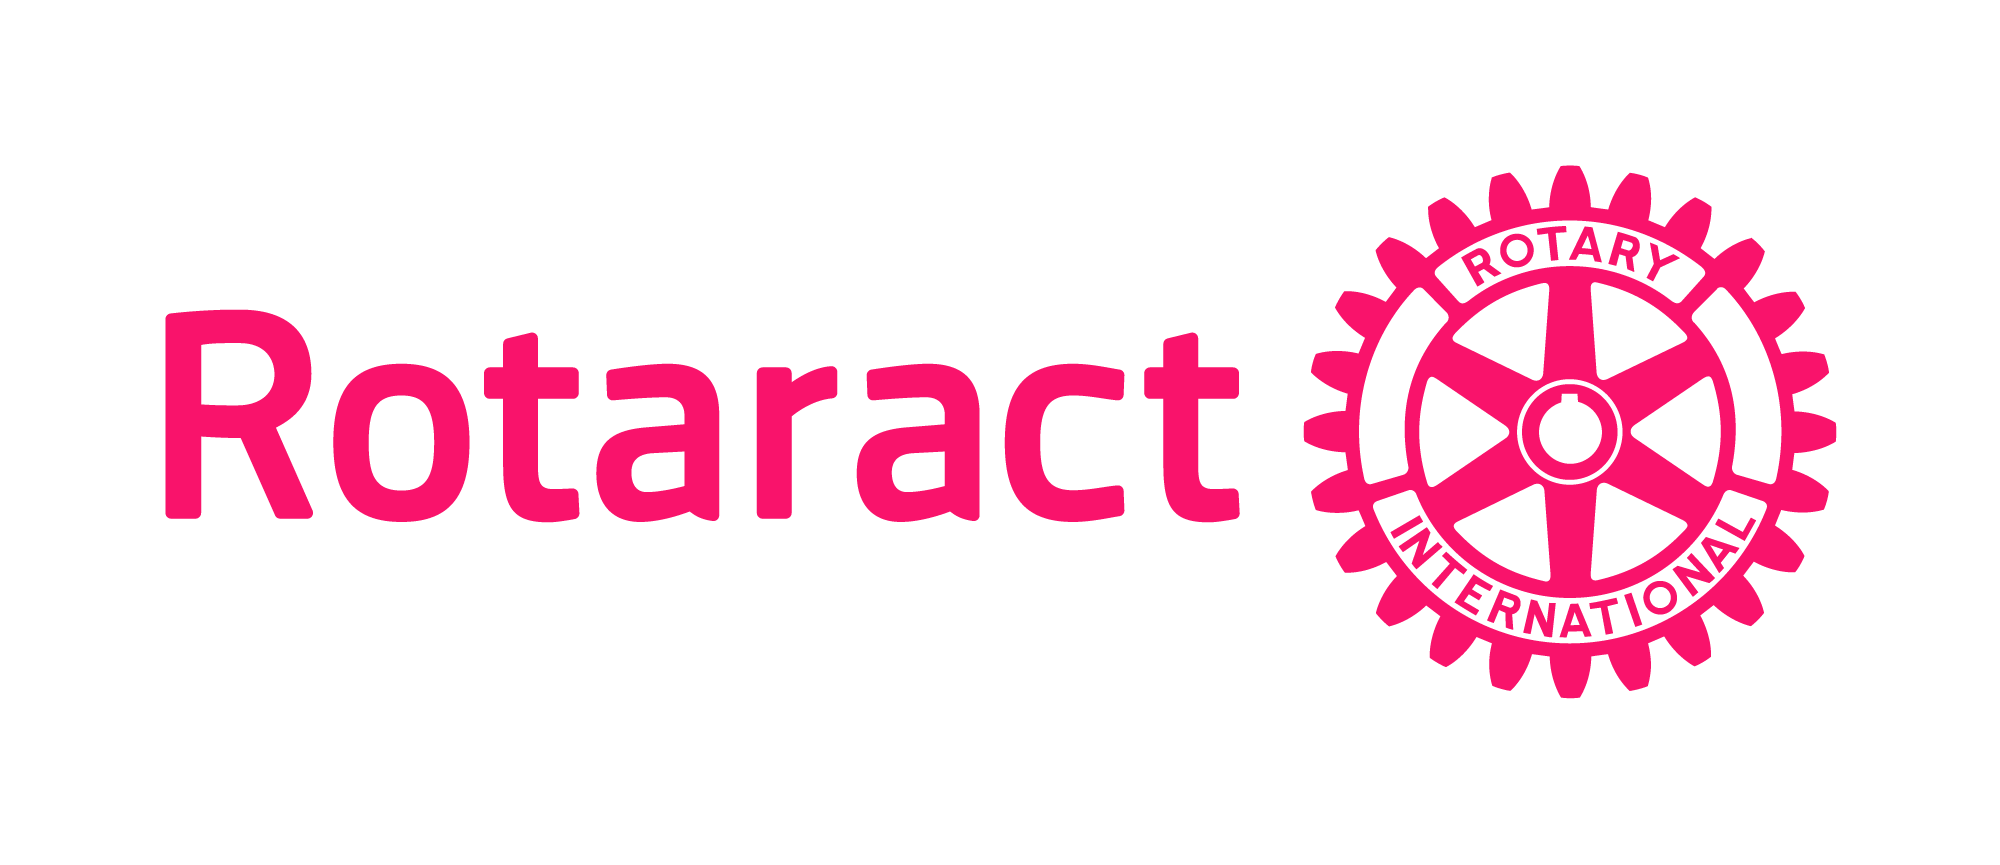 Rotaract.png